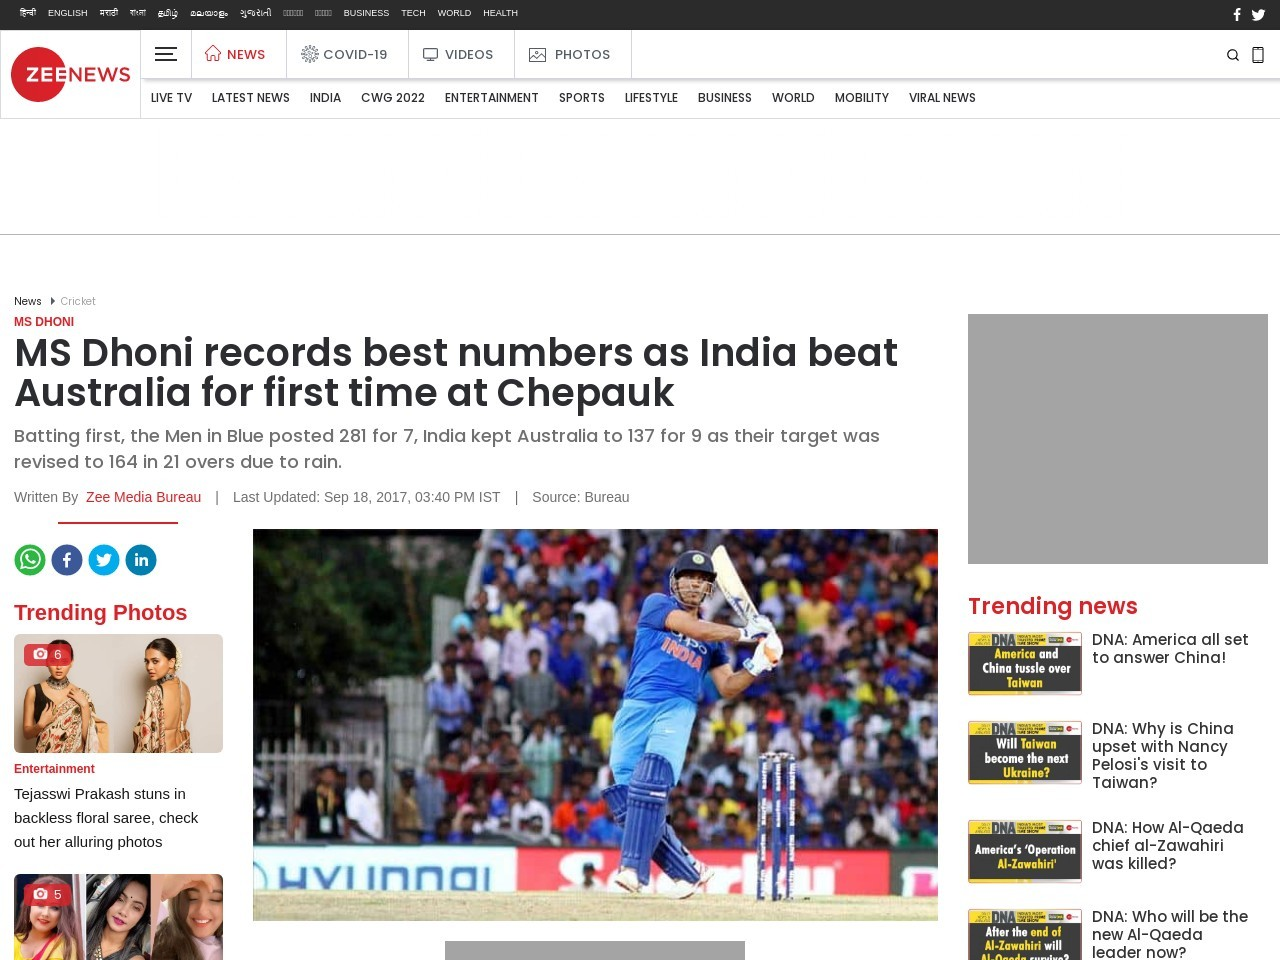 MS Dhoni records best numbers as India beat Australia for first time at Chepauk